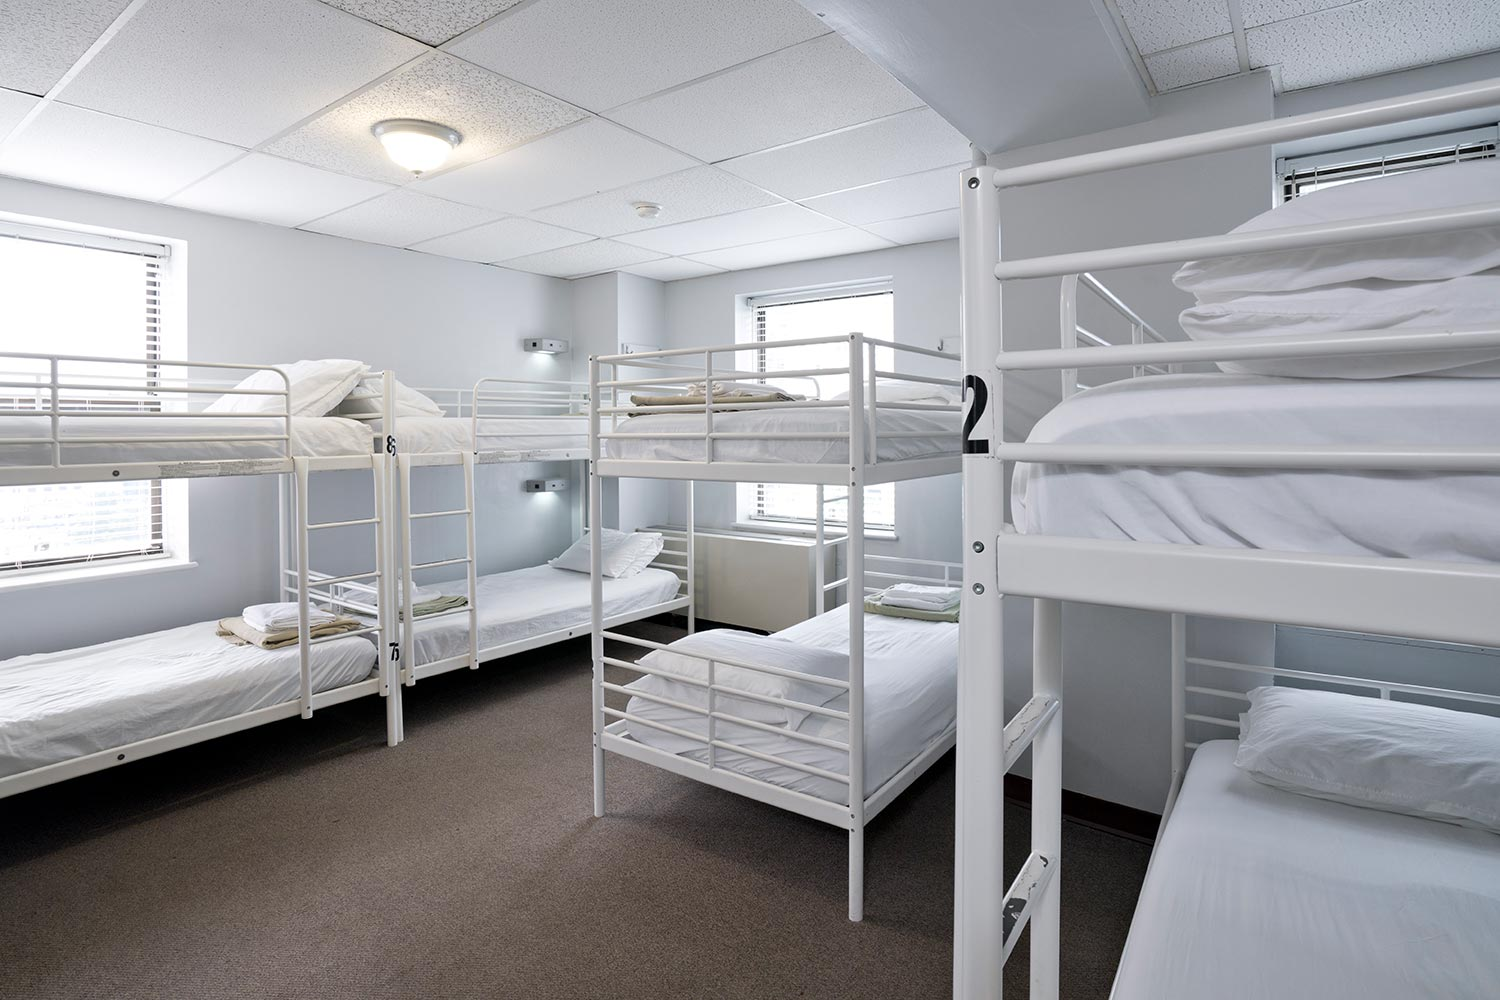 Room view with 8 bunk beds